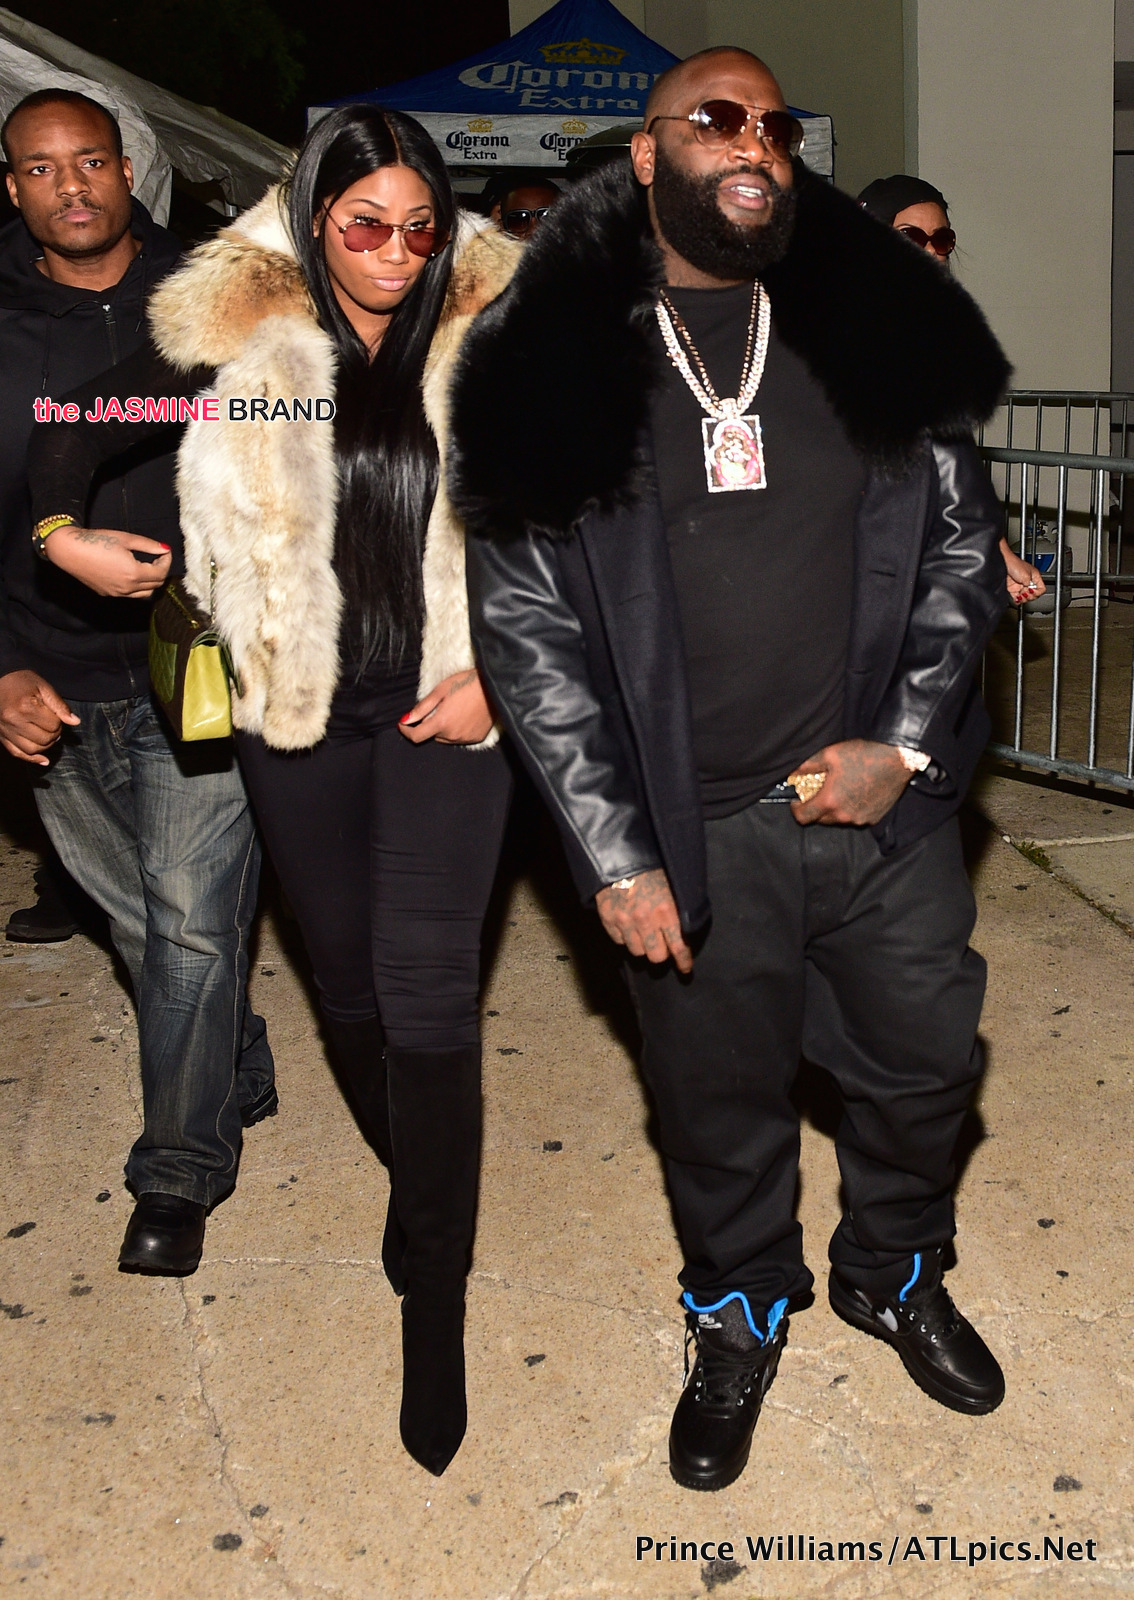 Cup Cakin': Rick Ross Celebrates 'Hood Billionaire' With ...